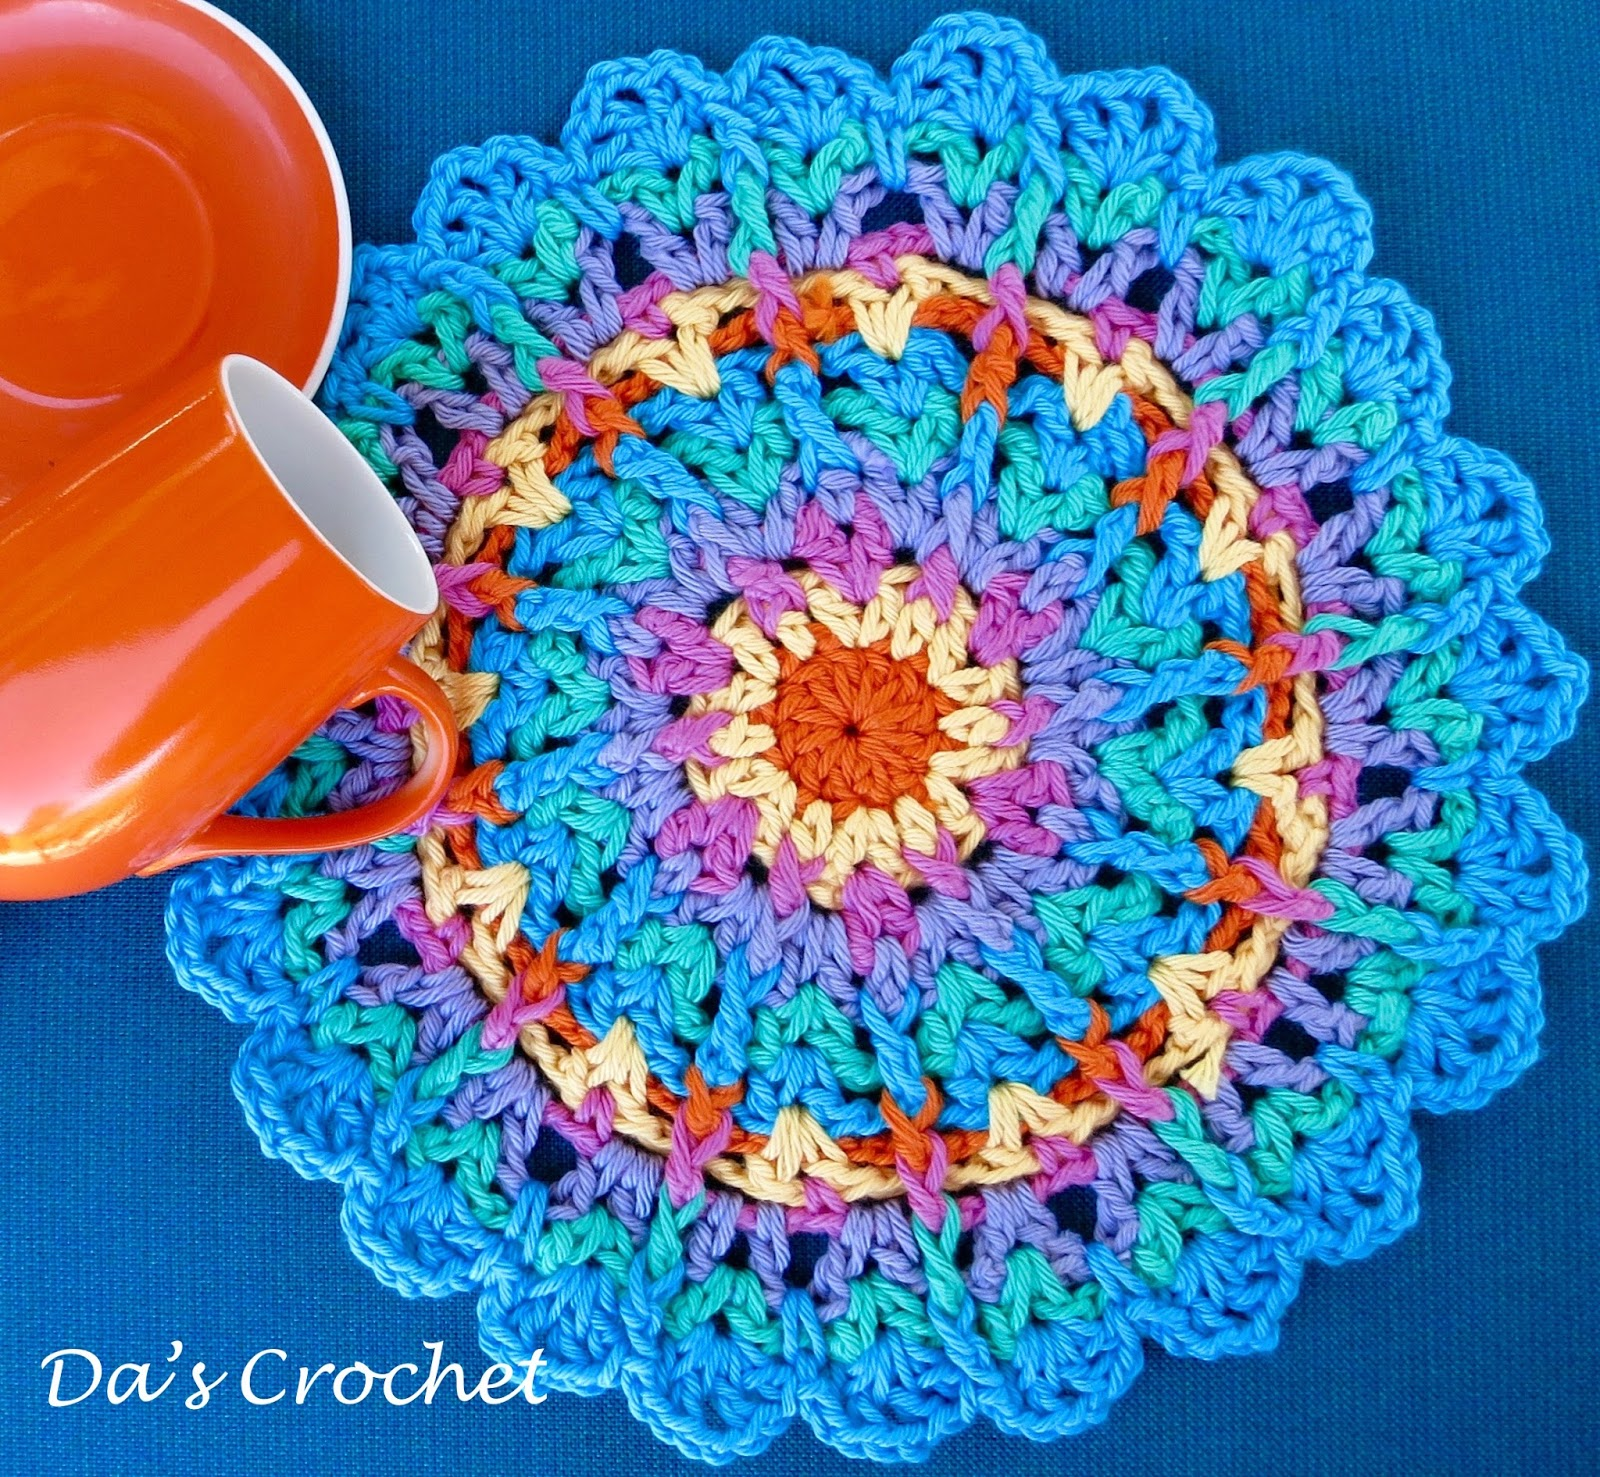 Crochet Patterns I Can Make And Sell : Das Crochet Connection: Why a Pattern Store?